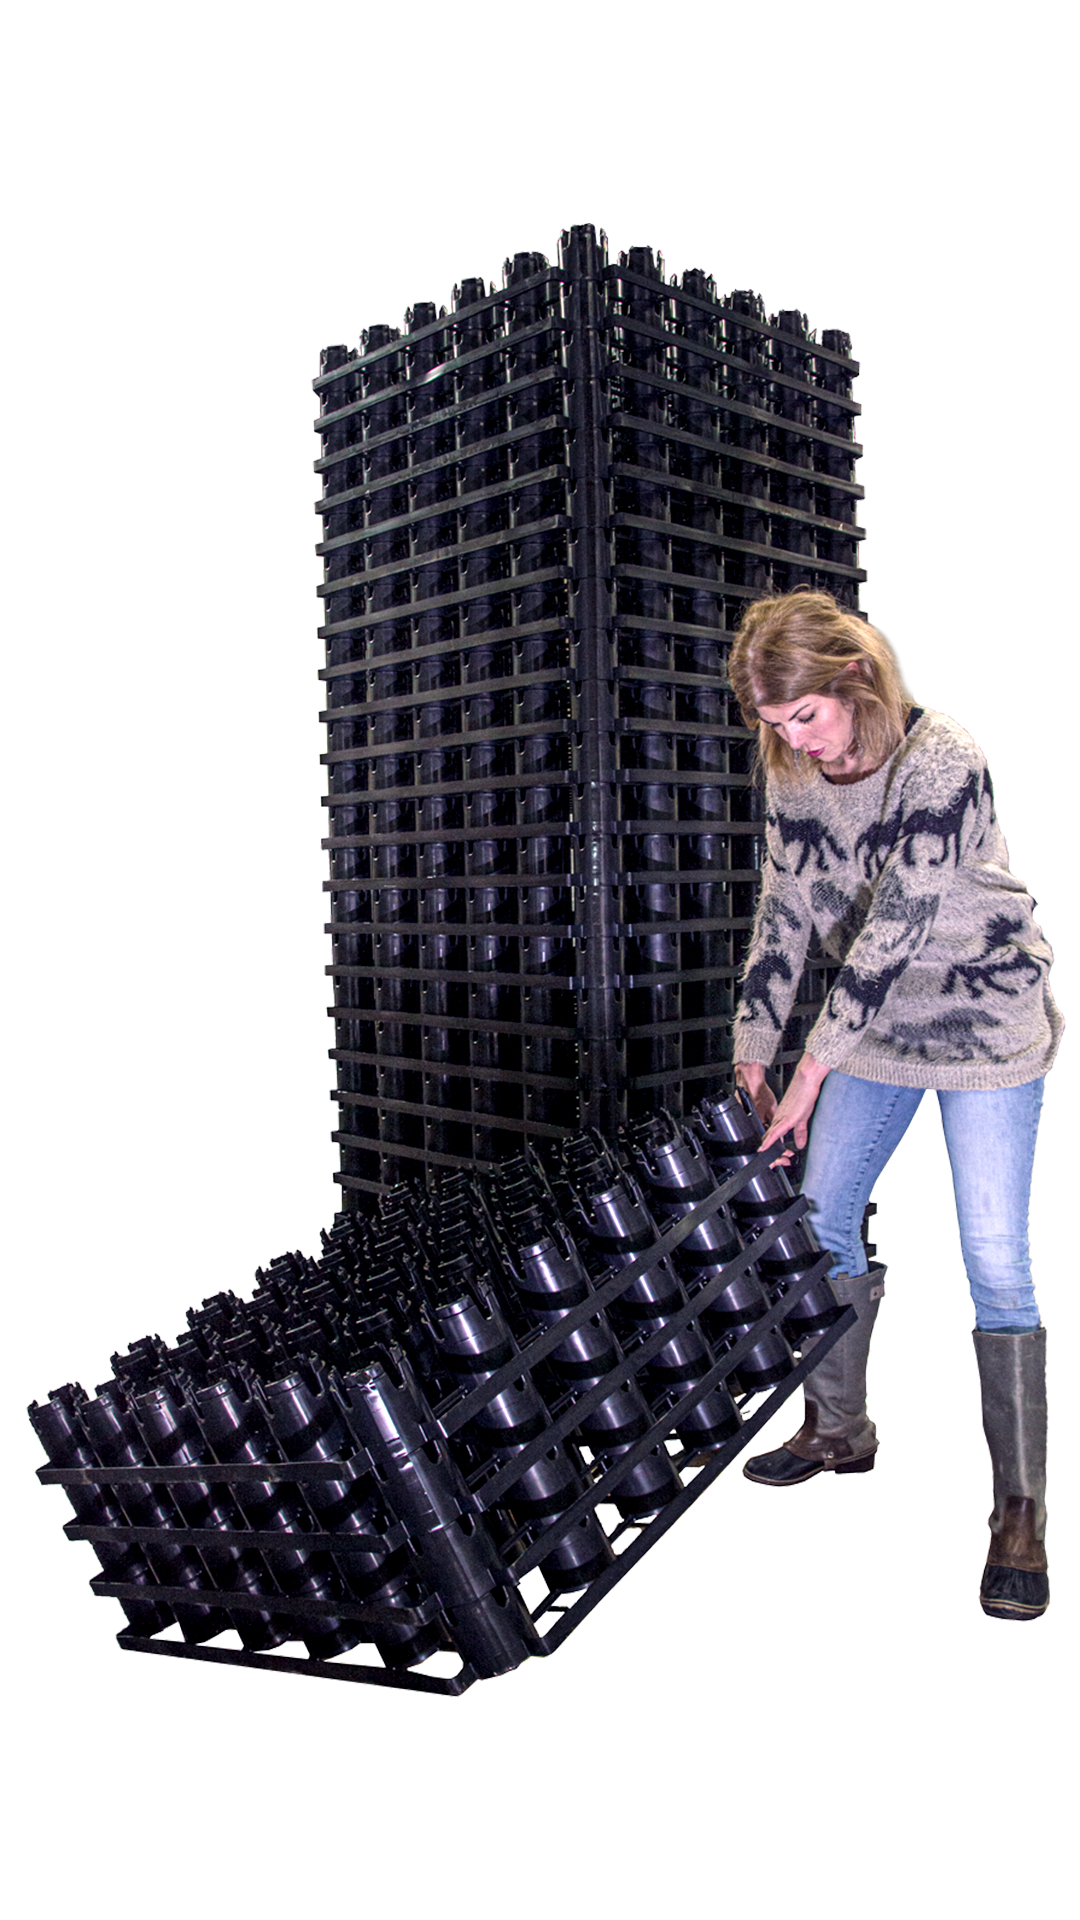 Tall stack of Rainstore 3 next to woman